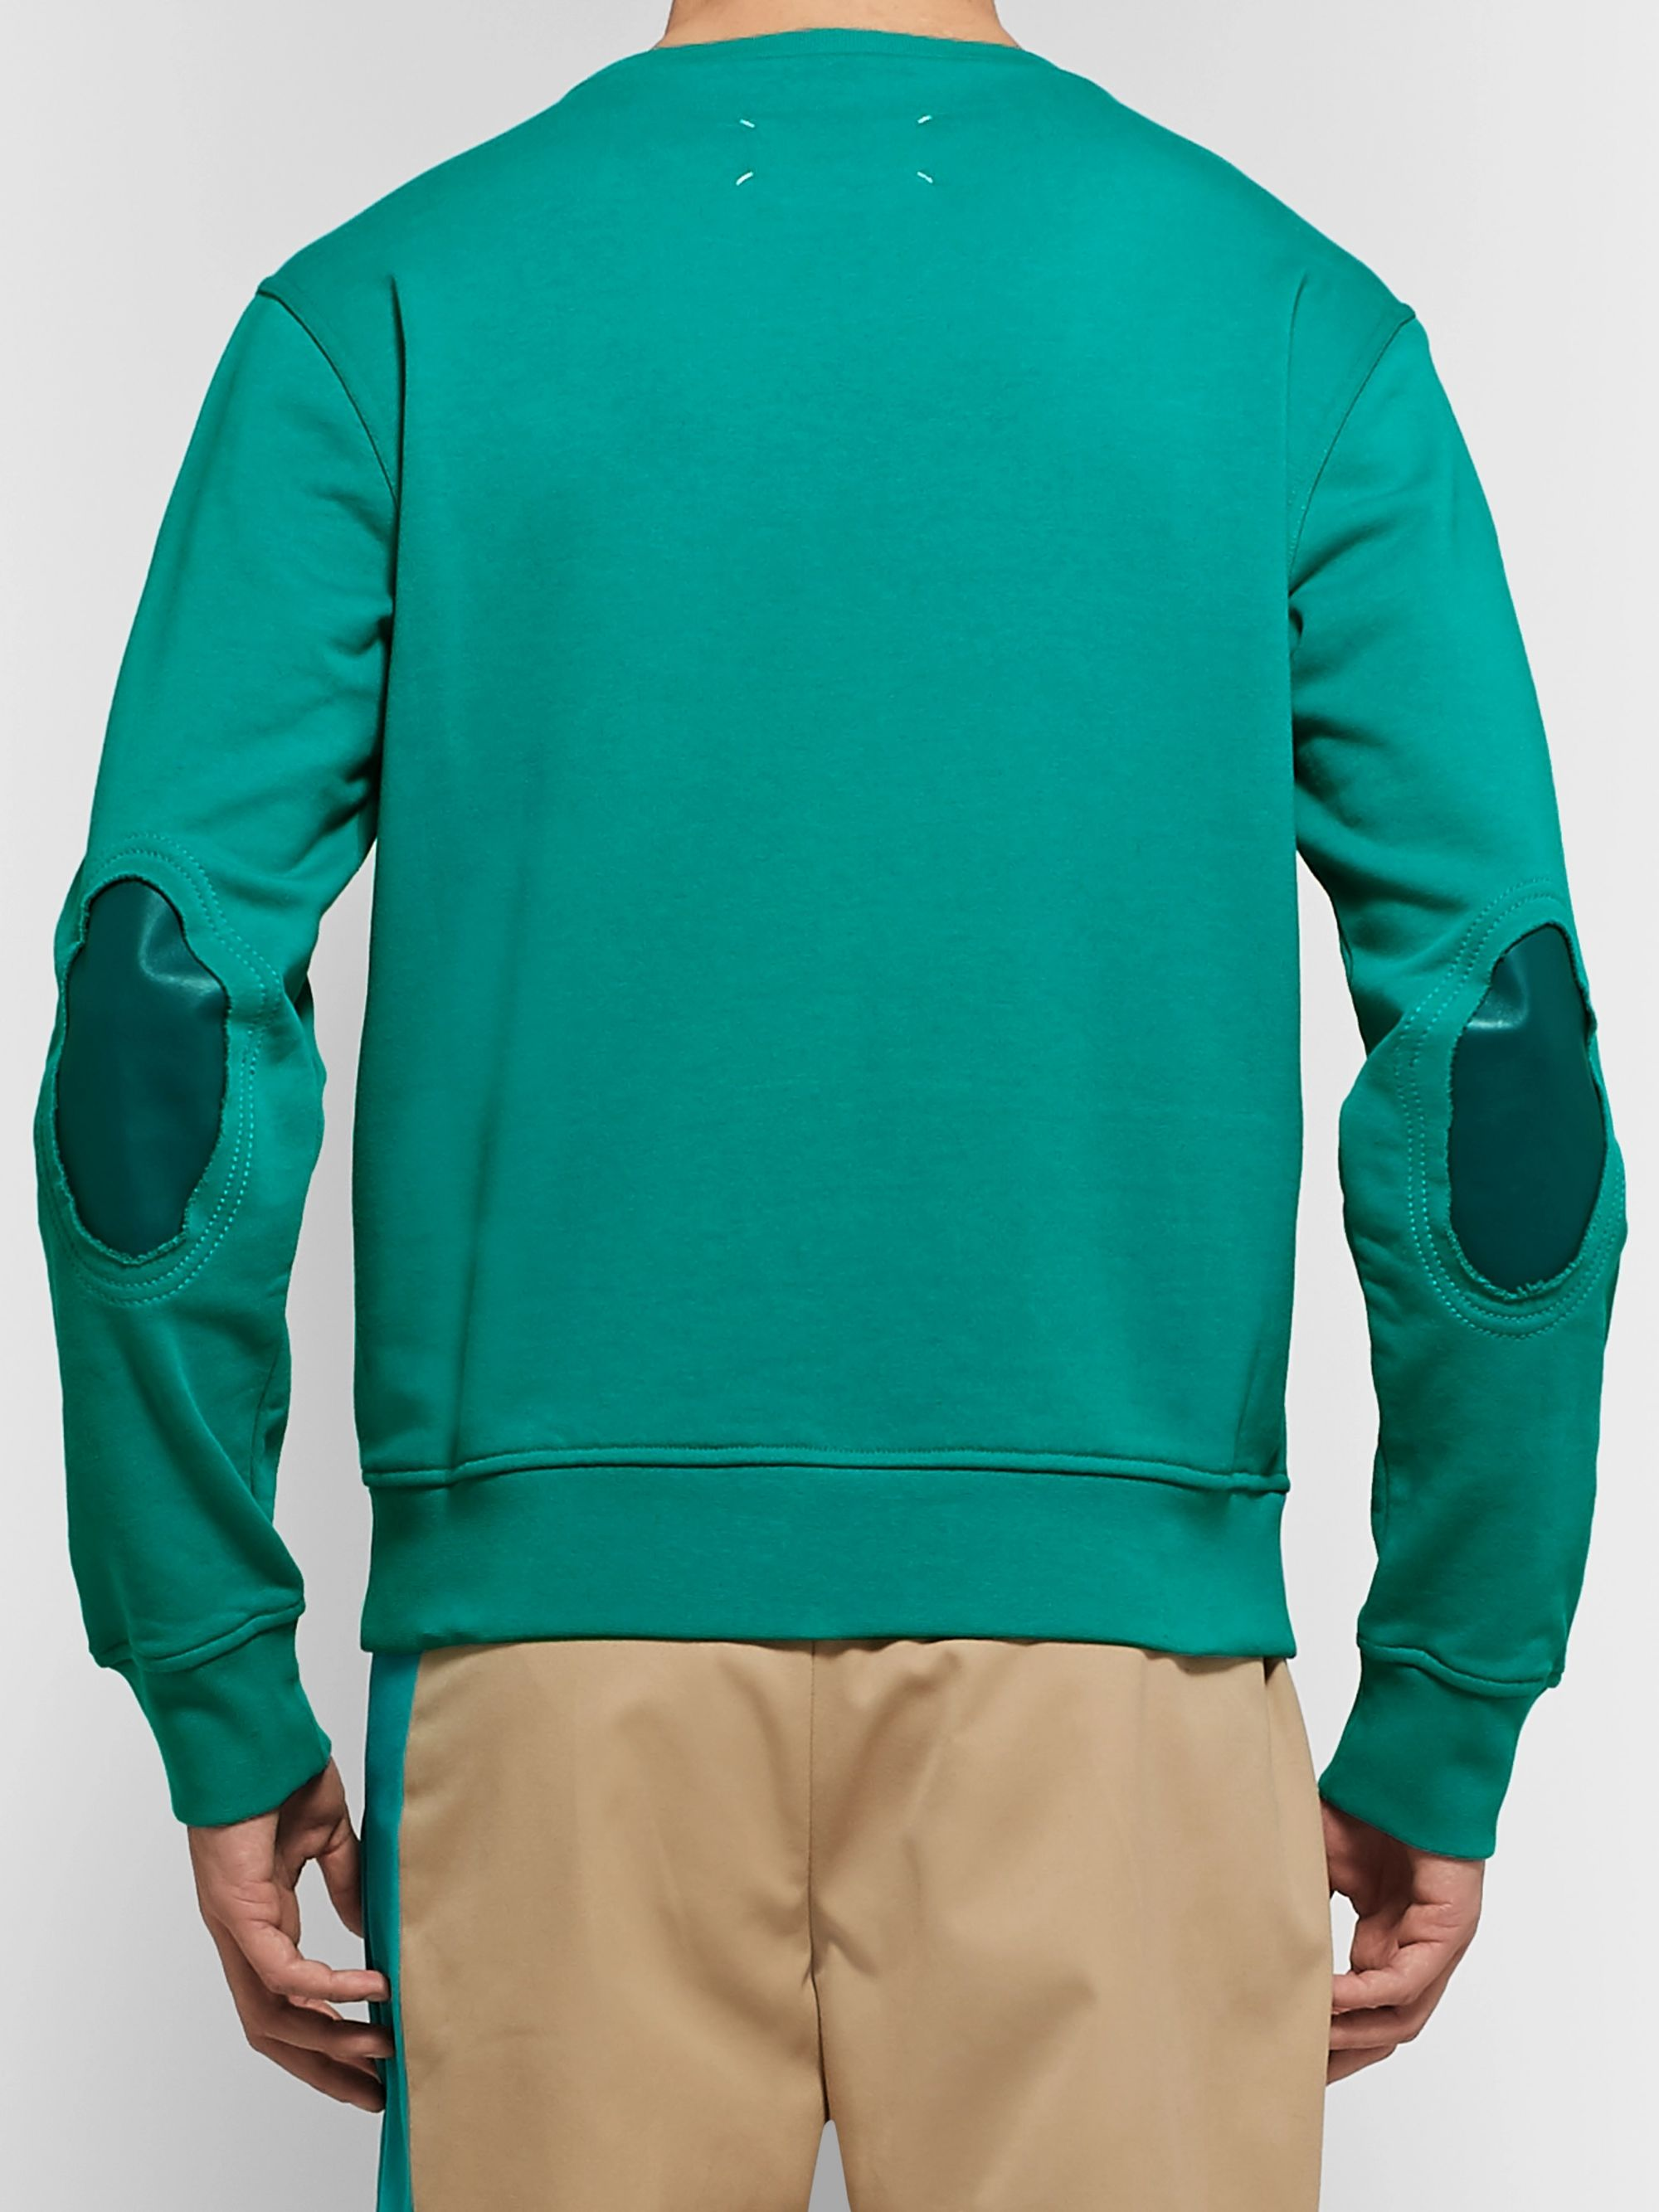 Maison Margiela Leather-Trimmed Loopback Cotton-Jersey Sweatshirt